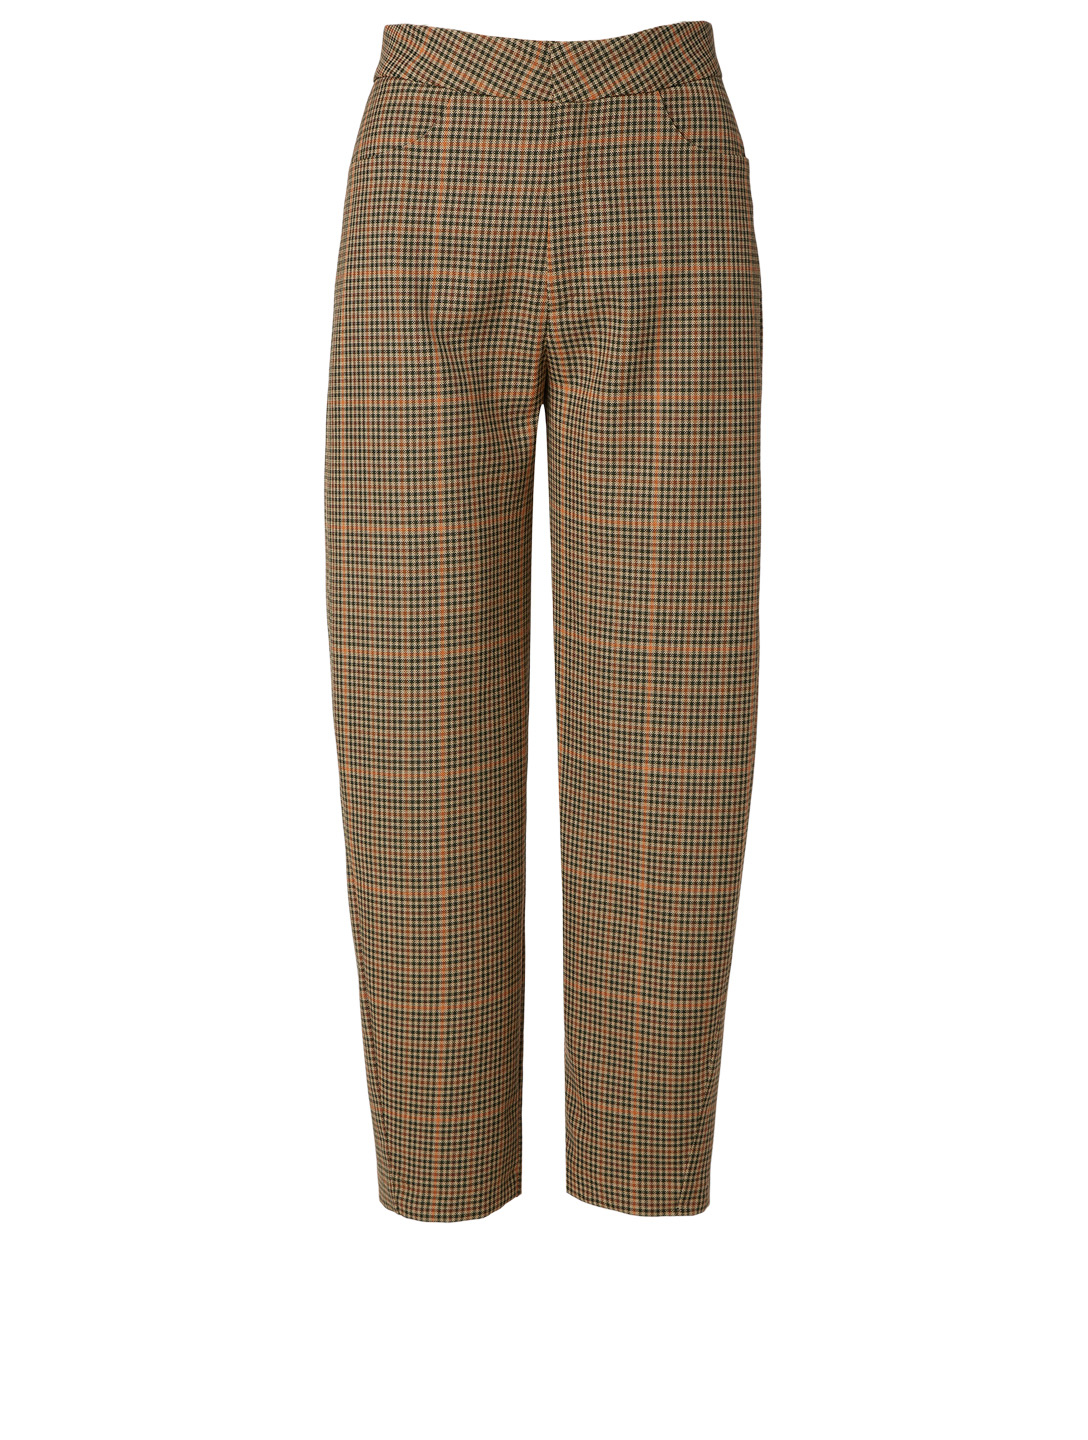 TOTÊME Novara Pants In Check Print Women's Brown